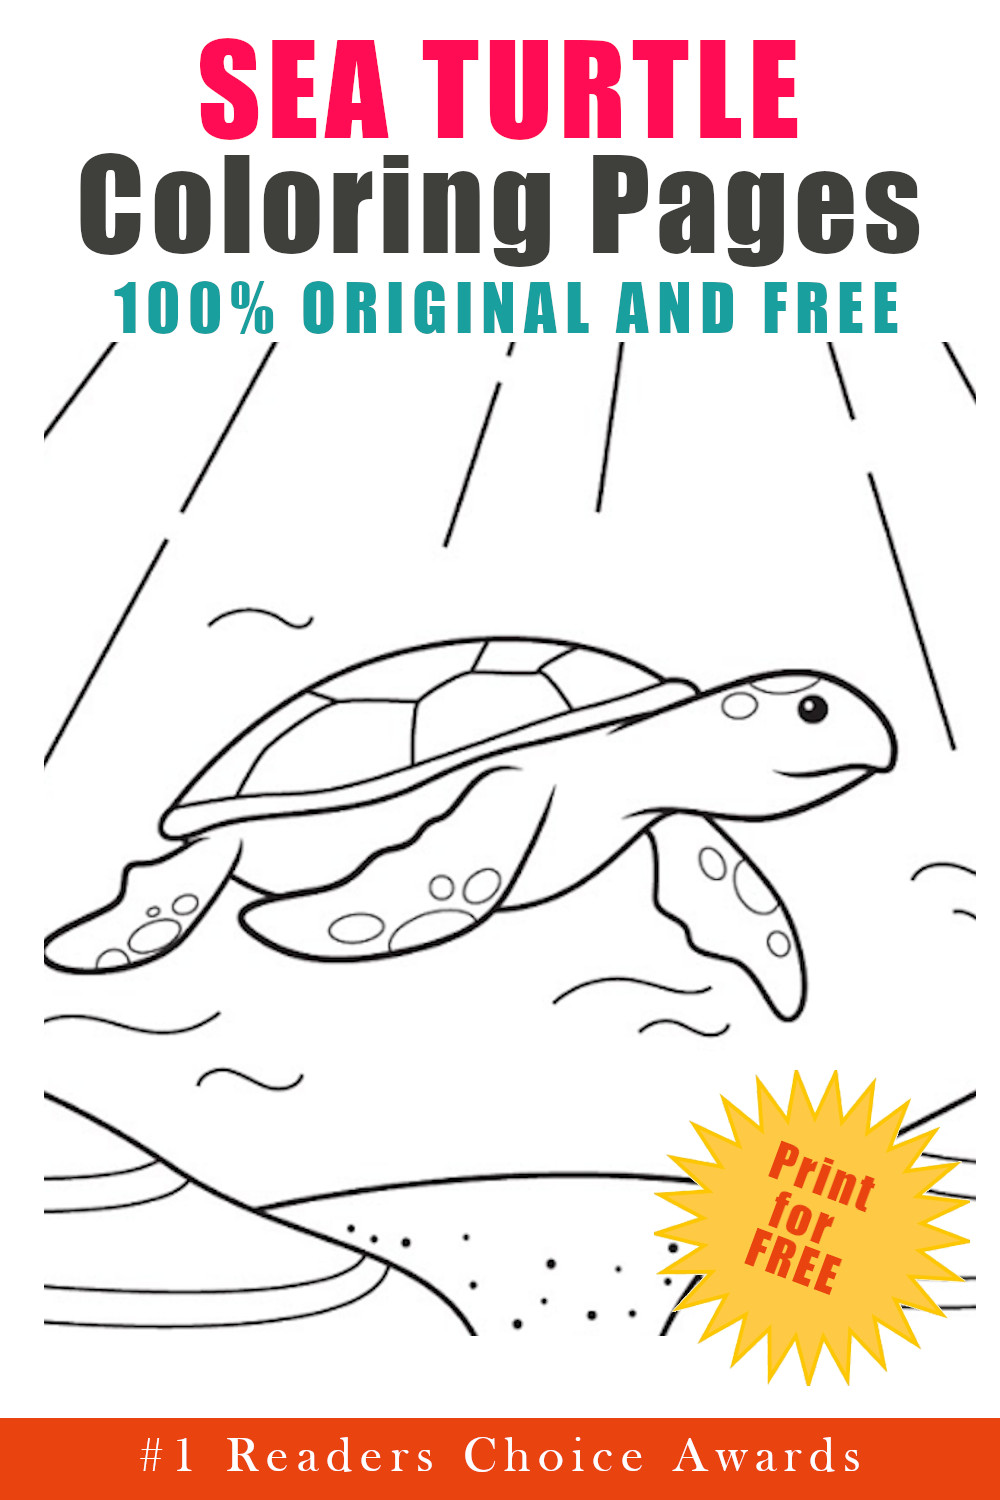 original and free sea turtle coloring pages